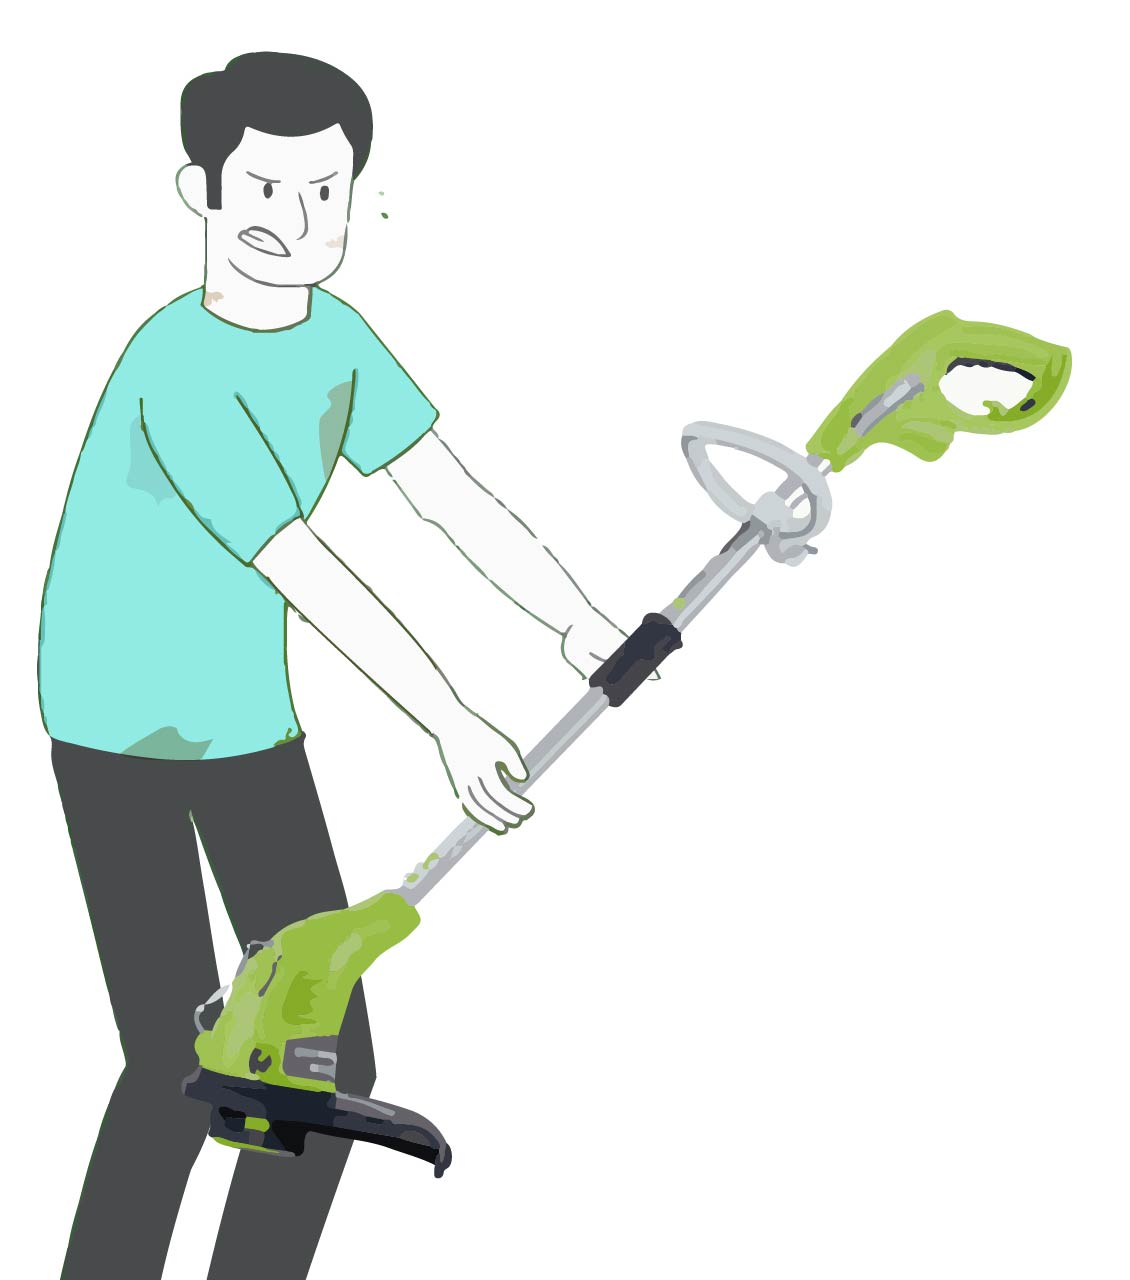 Weed Eater Removal & Weed Whacker Disposal Services